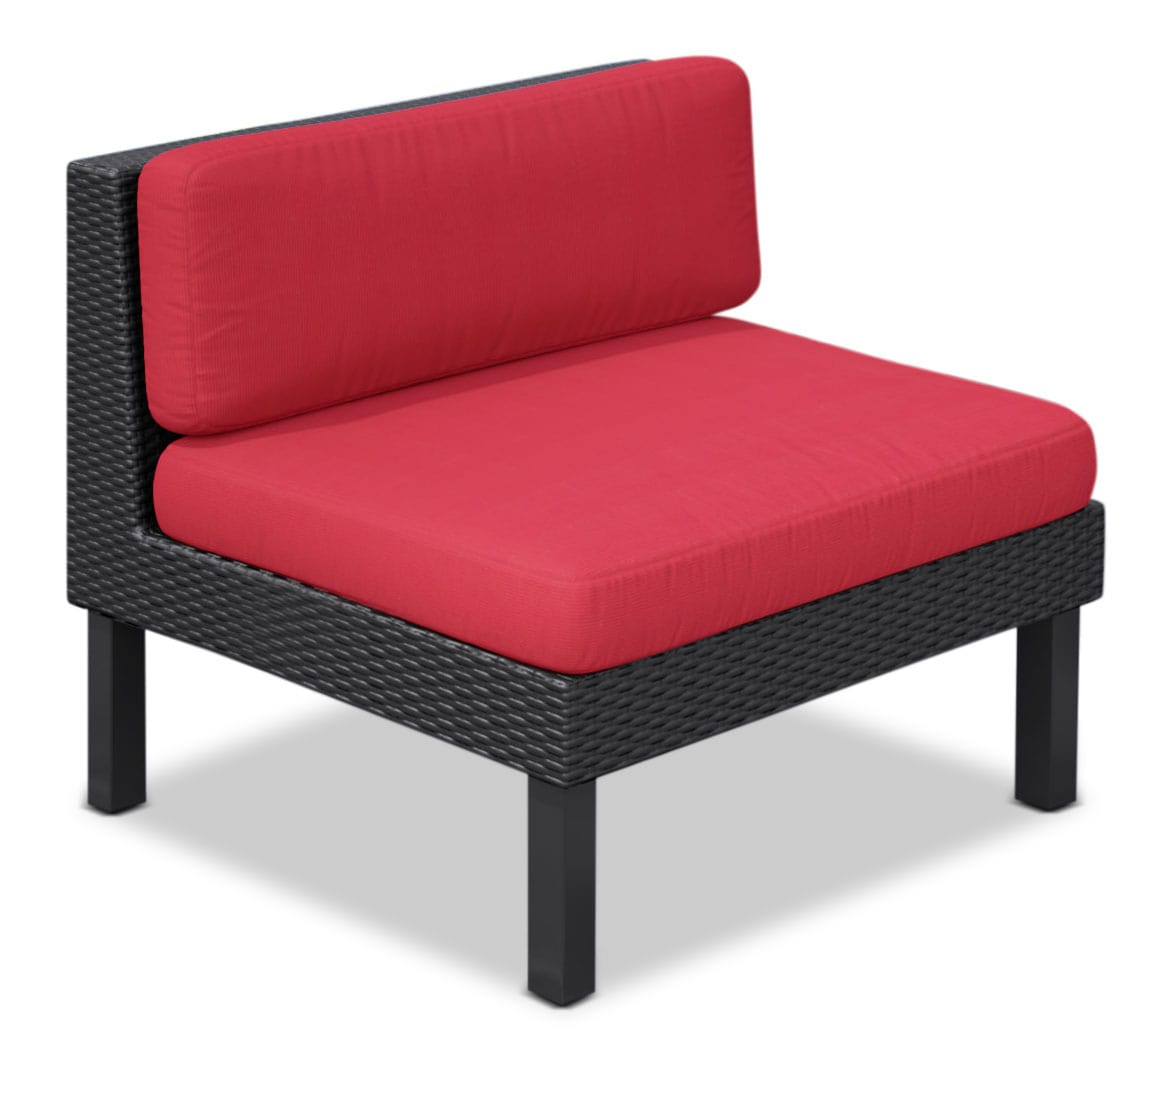 fauteuil sans accoudoir oakland pour la terrasse rouge brick. Black Bedroom Furniture Sets. Home Design Ideas